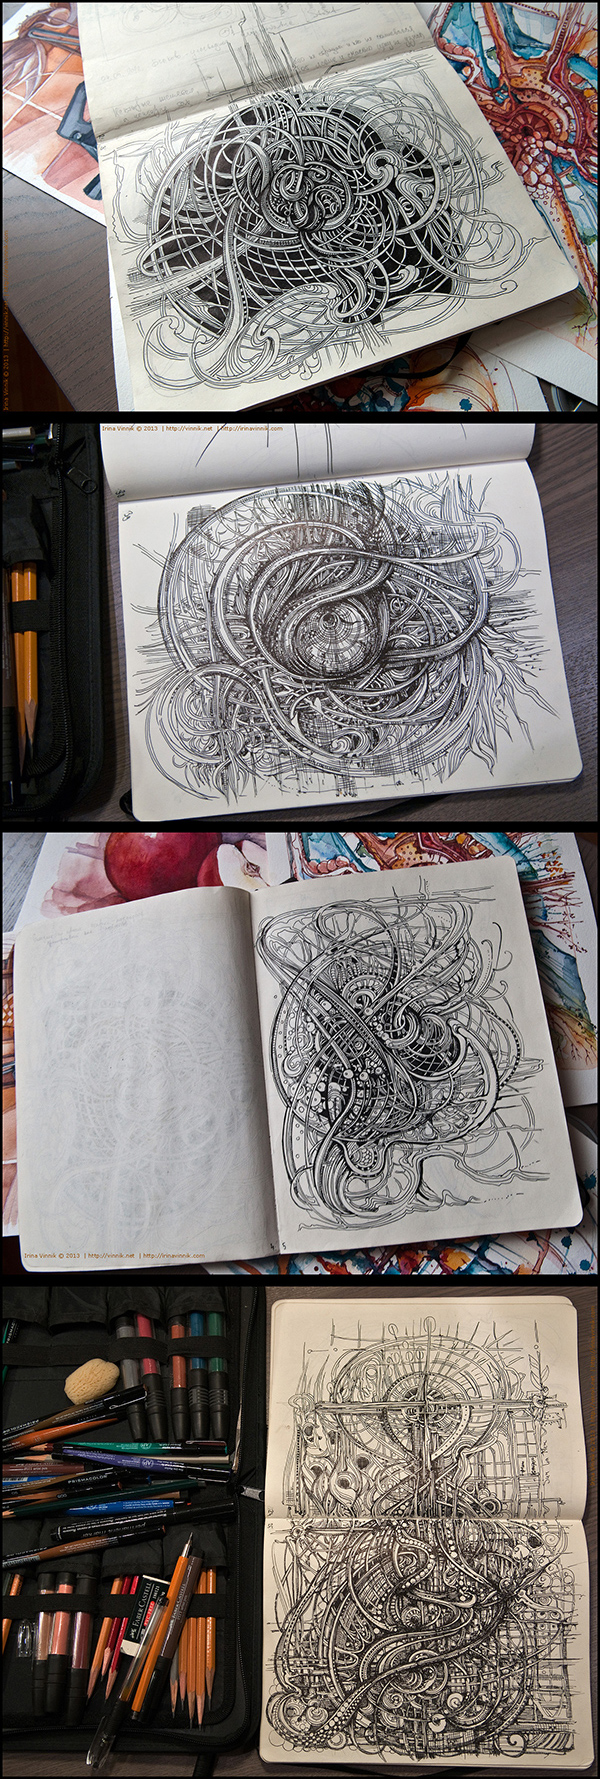 Inspirations graphiques dessins : Irina Vinnik | Sketchbook 2013 (vol.4)